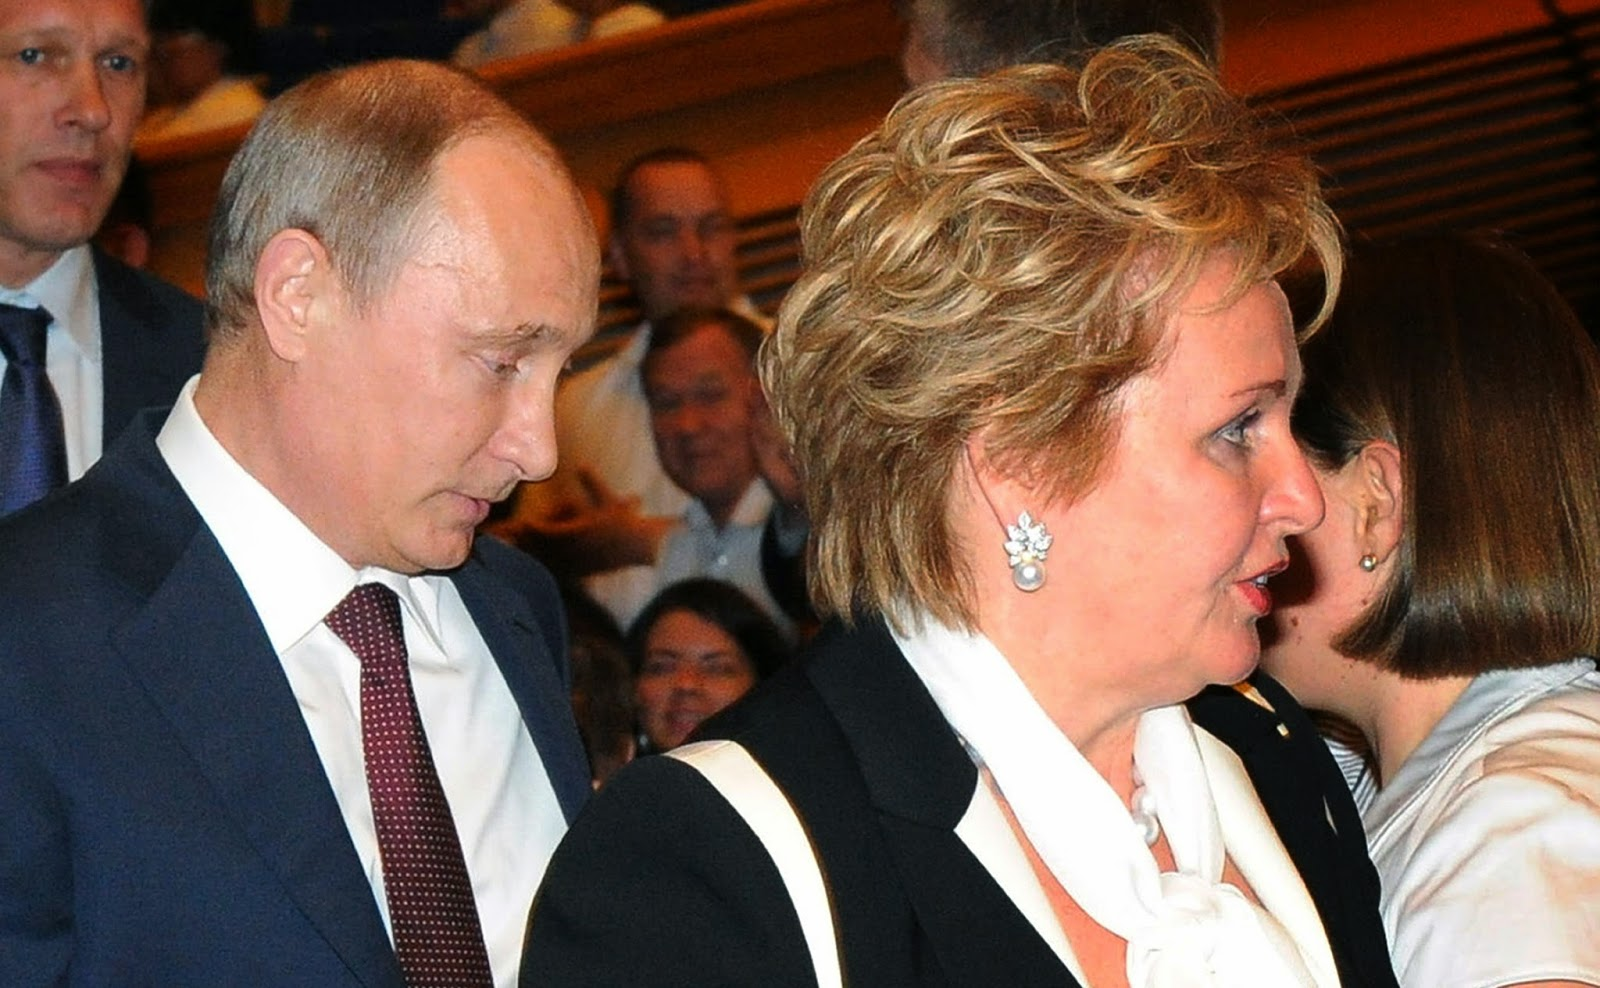 Putin and his wife announced their divorce in 2013 during the interval of a ballet.